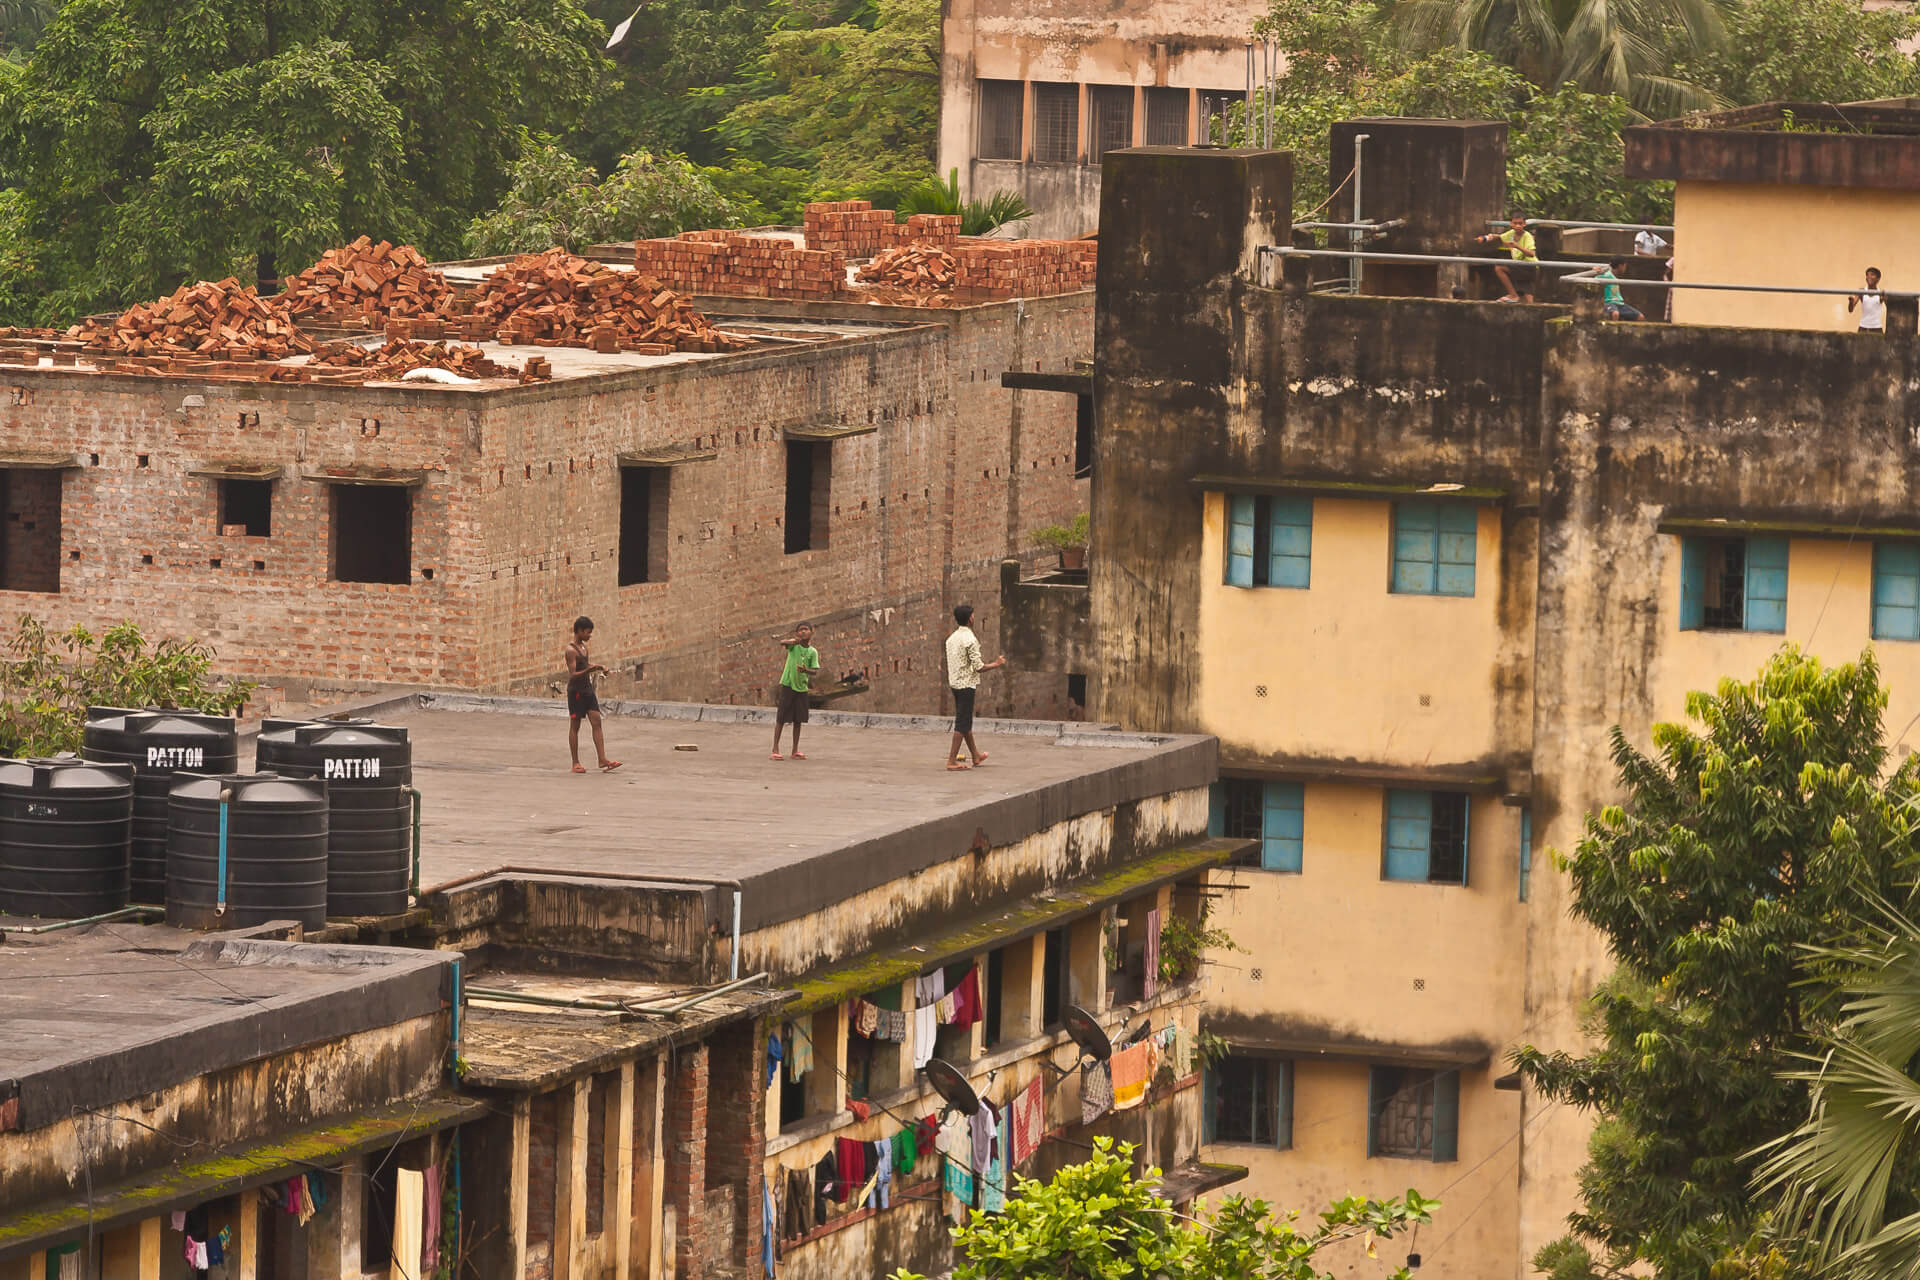 Kids playing on the Roof | Streetfotografie in Kalkutta